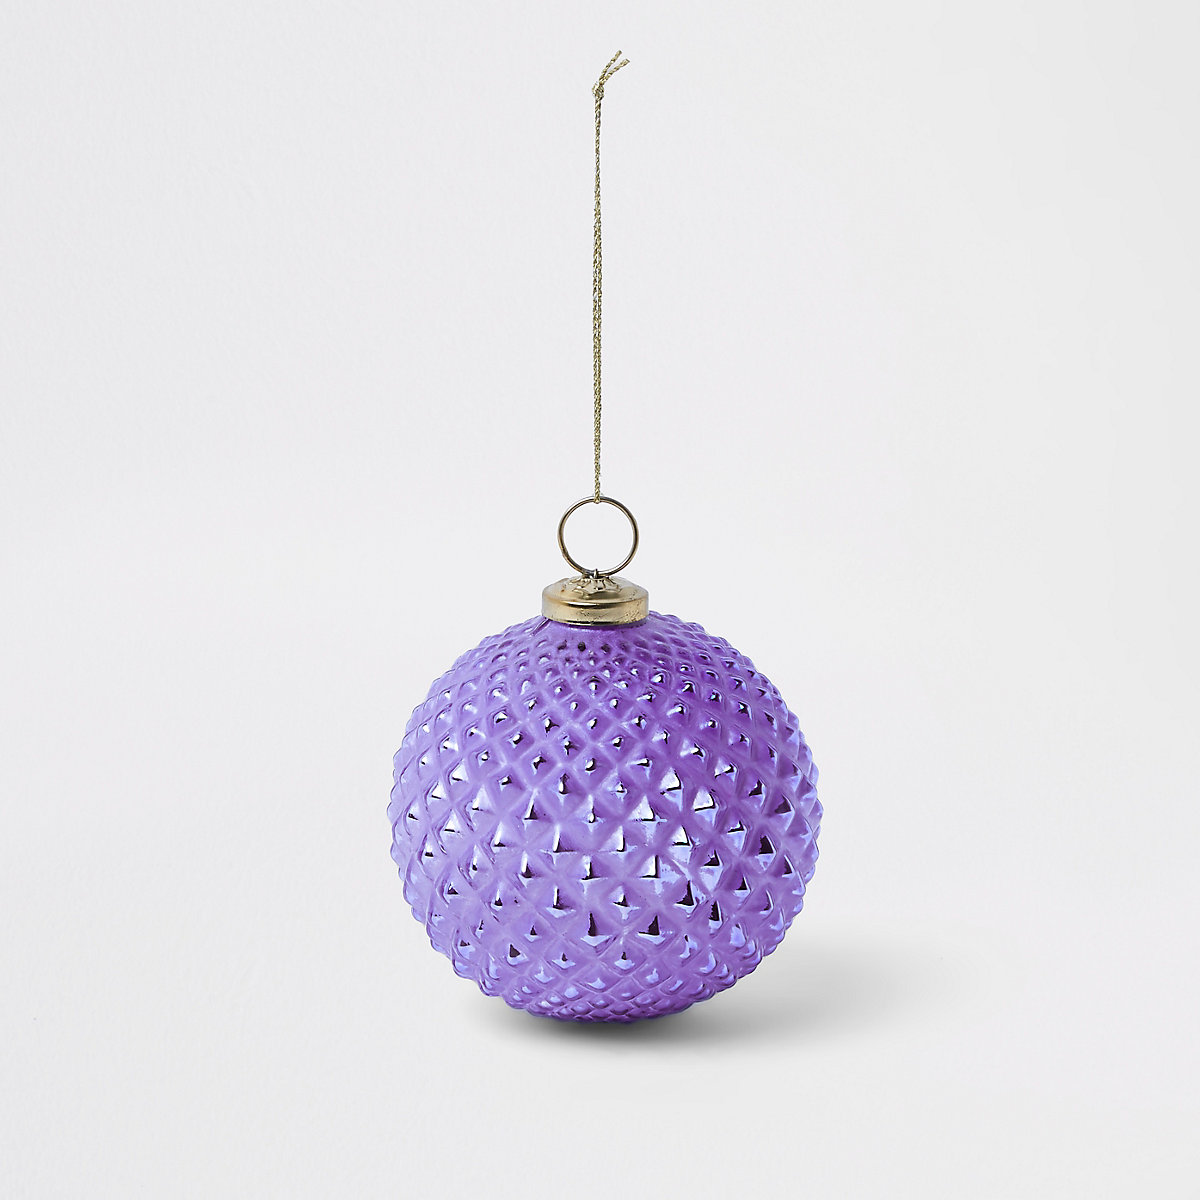 Large purple metallic bauble